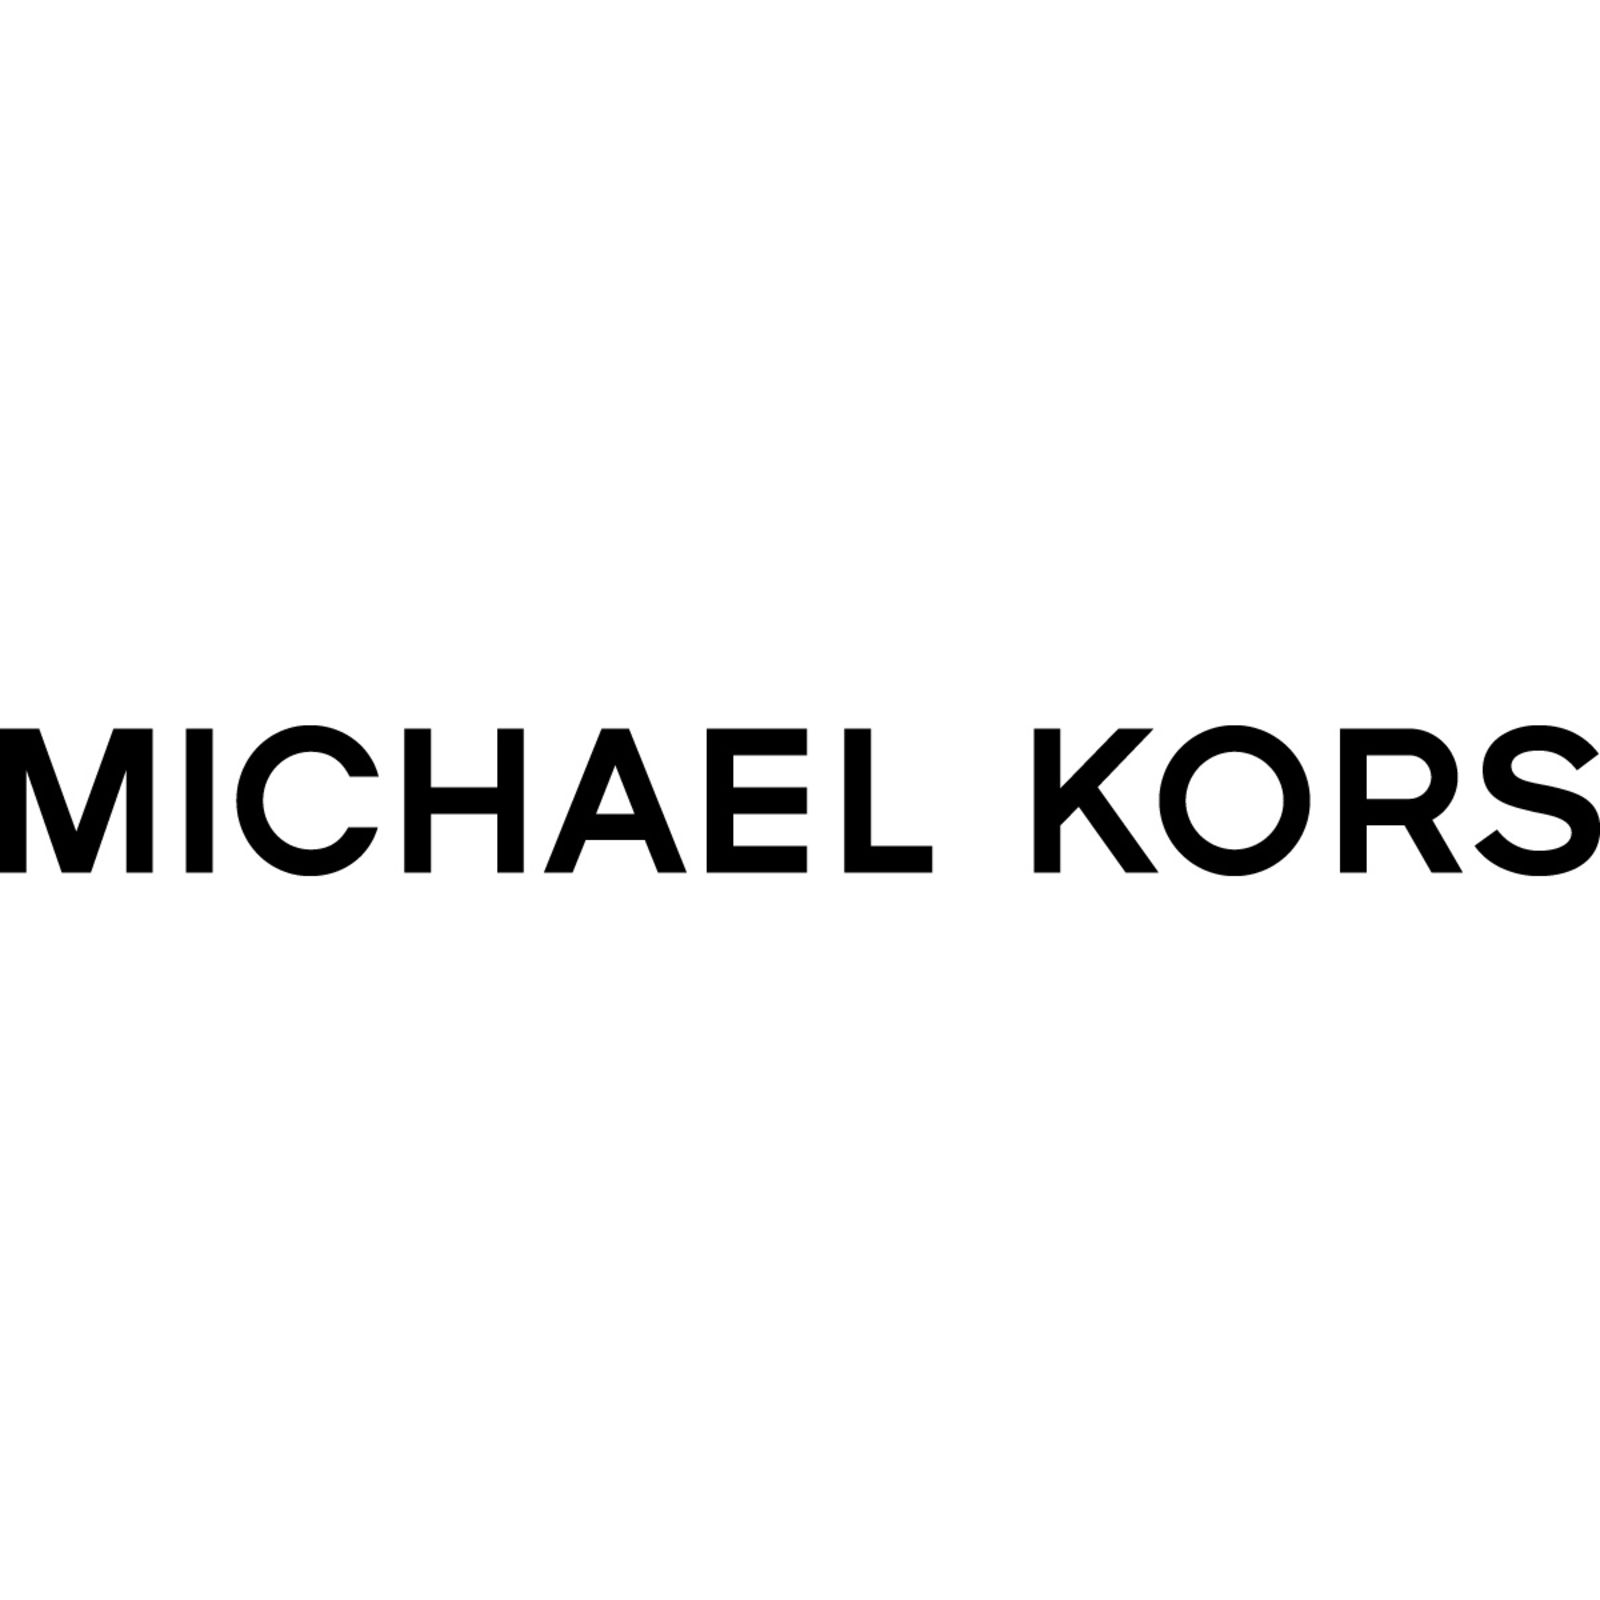 MICHAEL KORS COLLECTION (Image 1)